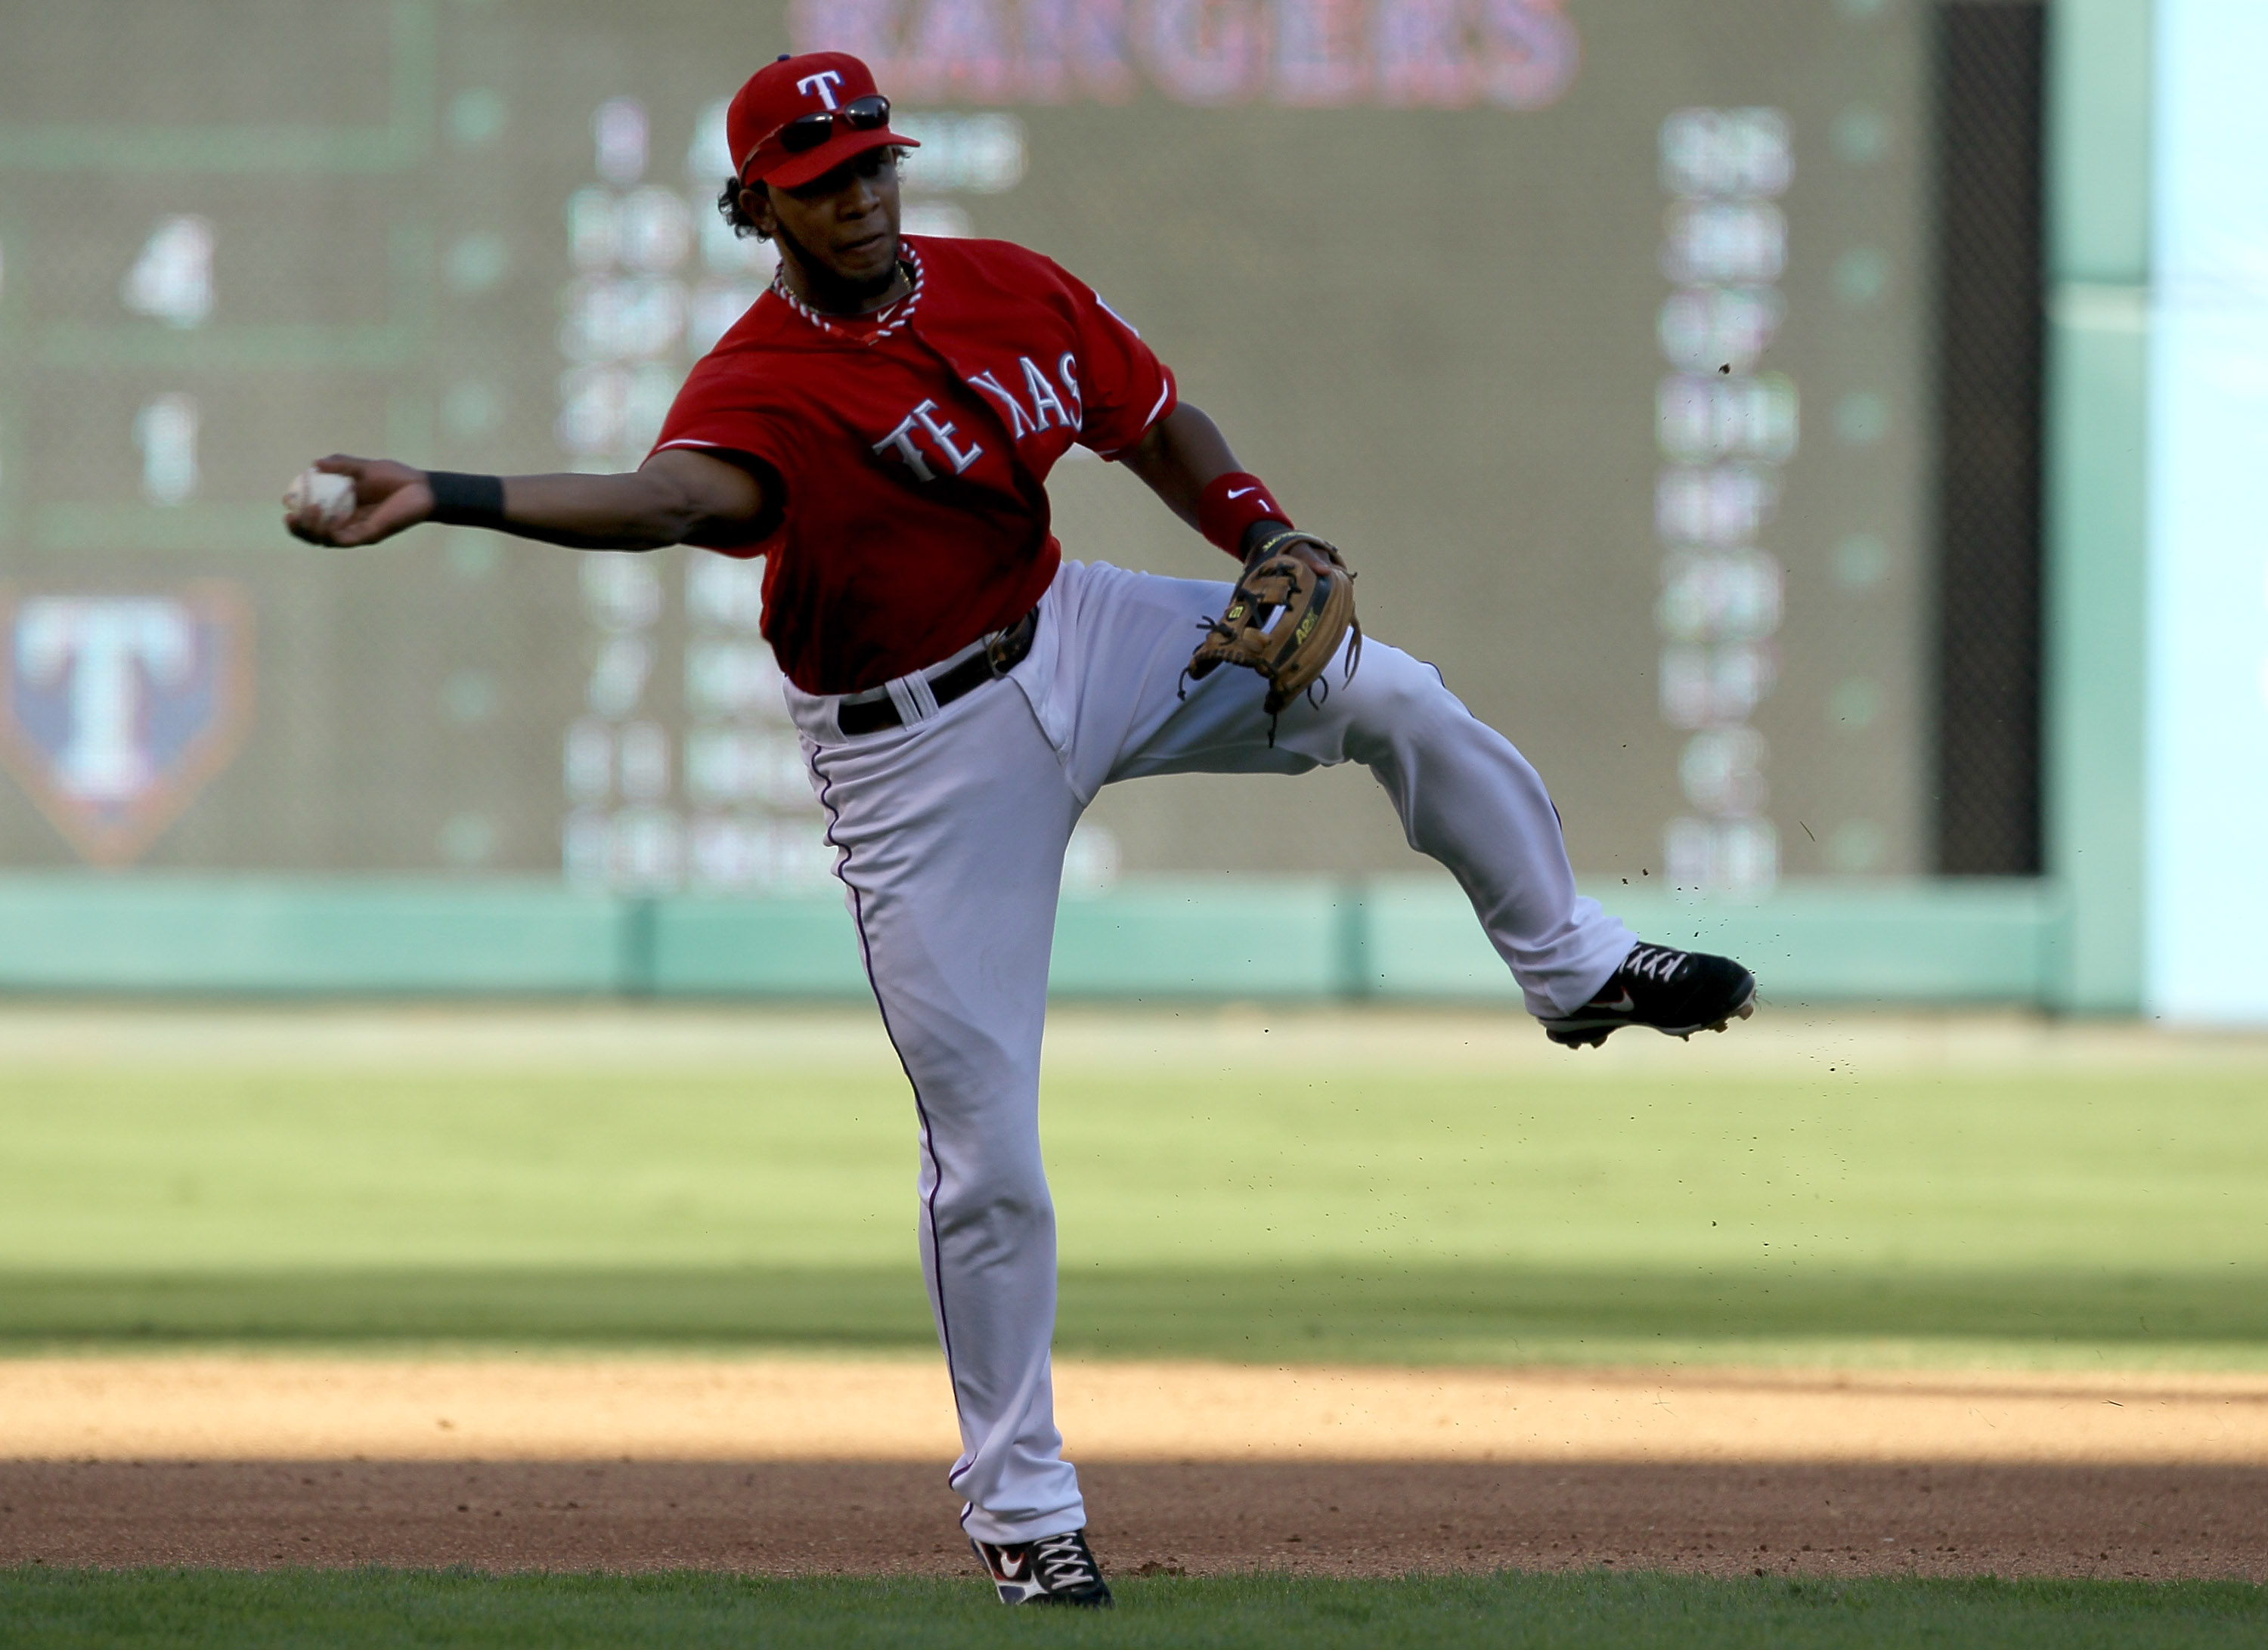 ARLINGTON, TX - OCTOBER 9:   Shortstop Elvis Andrus #1 of the Texas Rangers throws out Evan Longoria of the Tampa Bay Rays in the fourth inning during game three of the ALDS at Rangers Ballpark in Arlington on October 9, 2010 in Arlington, Texas.  (Photo